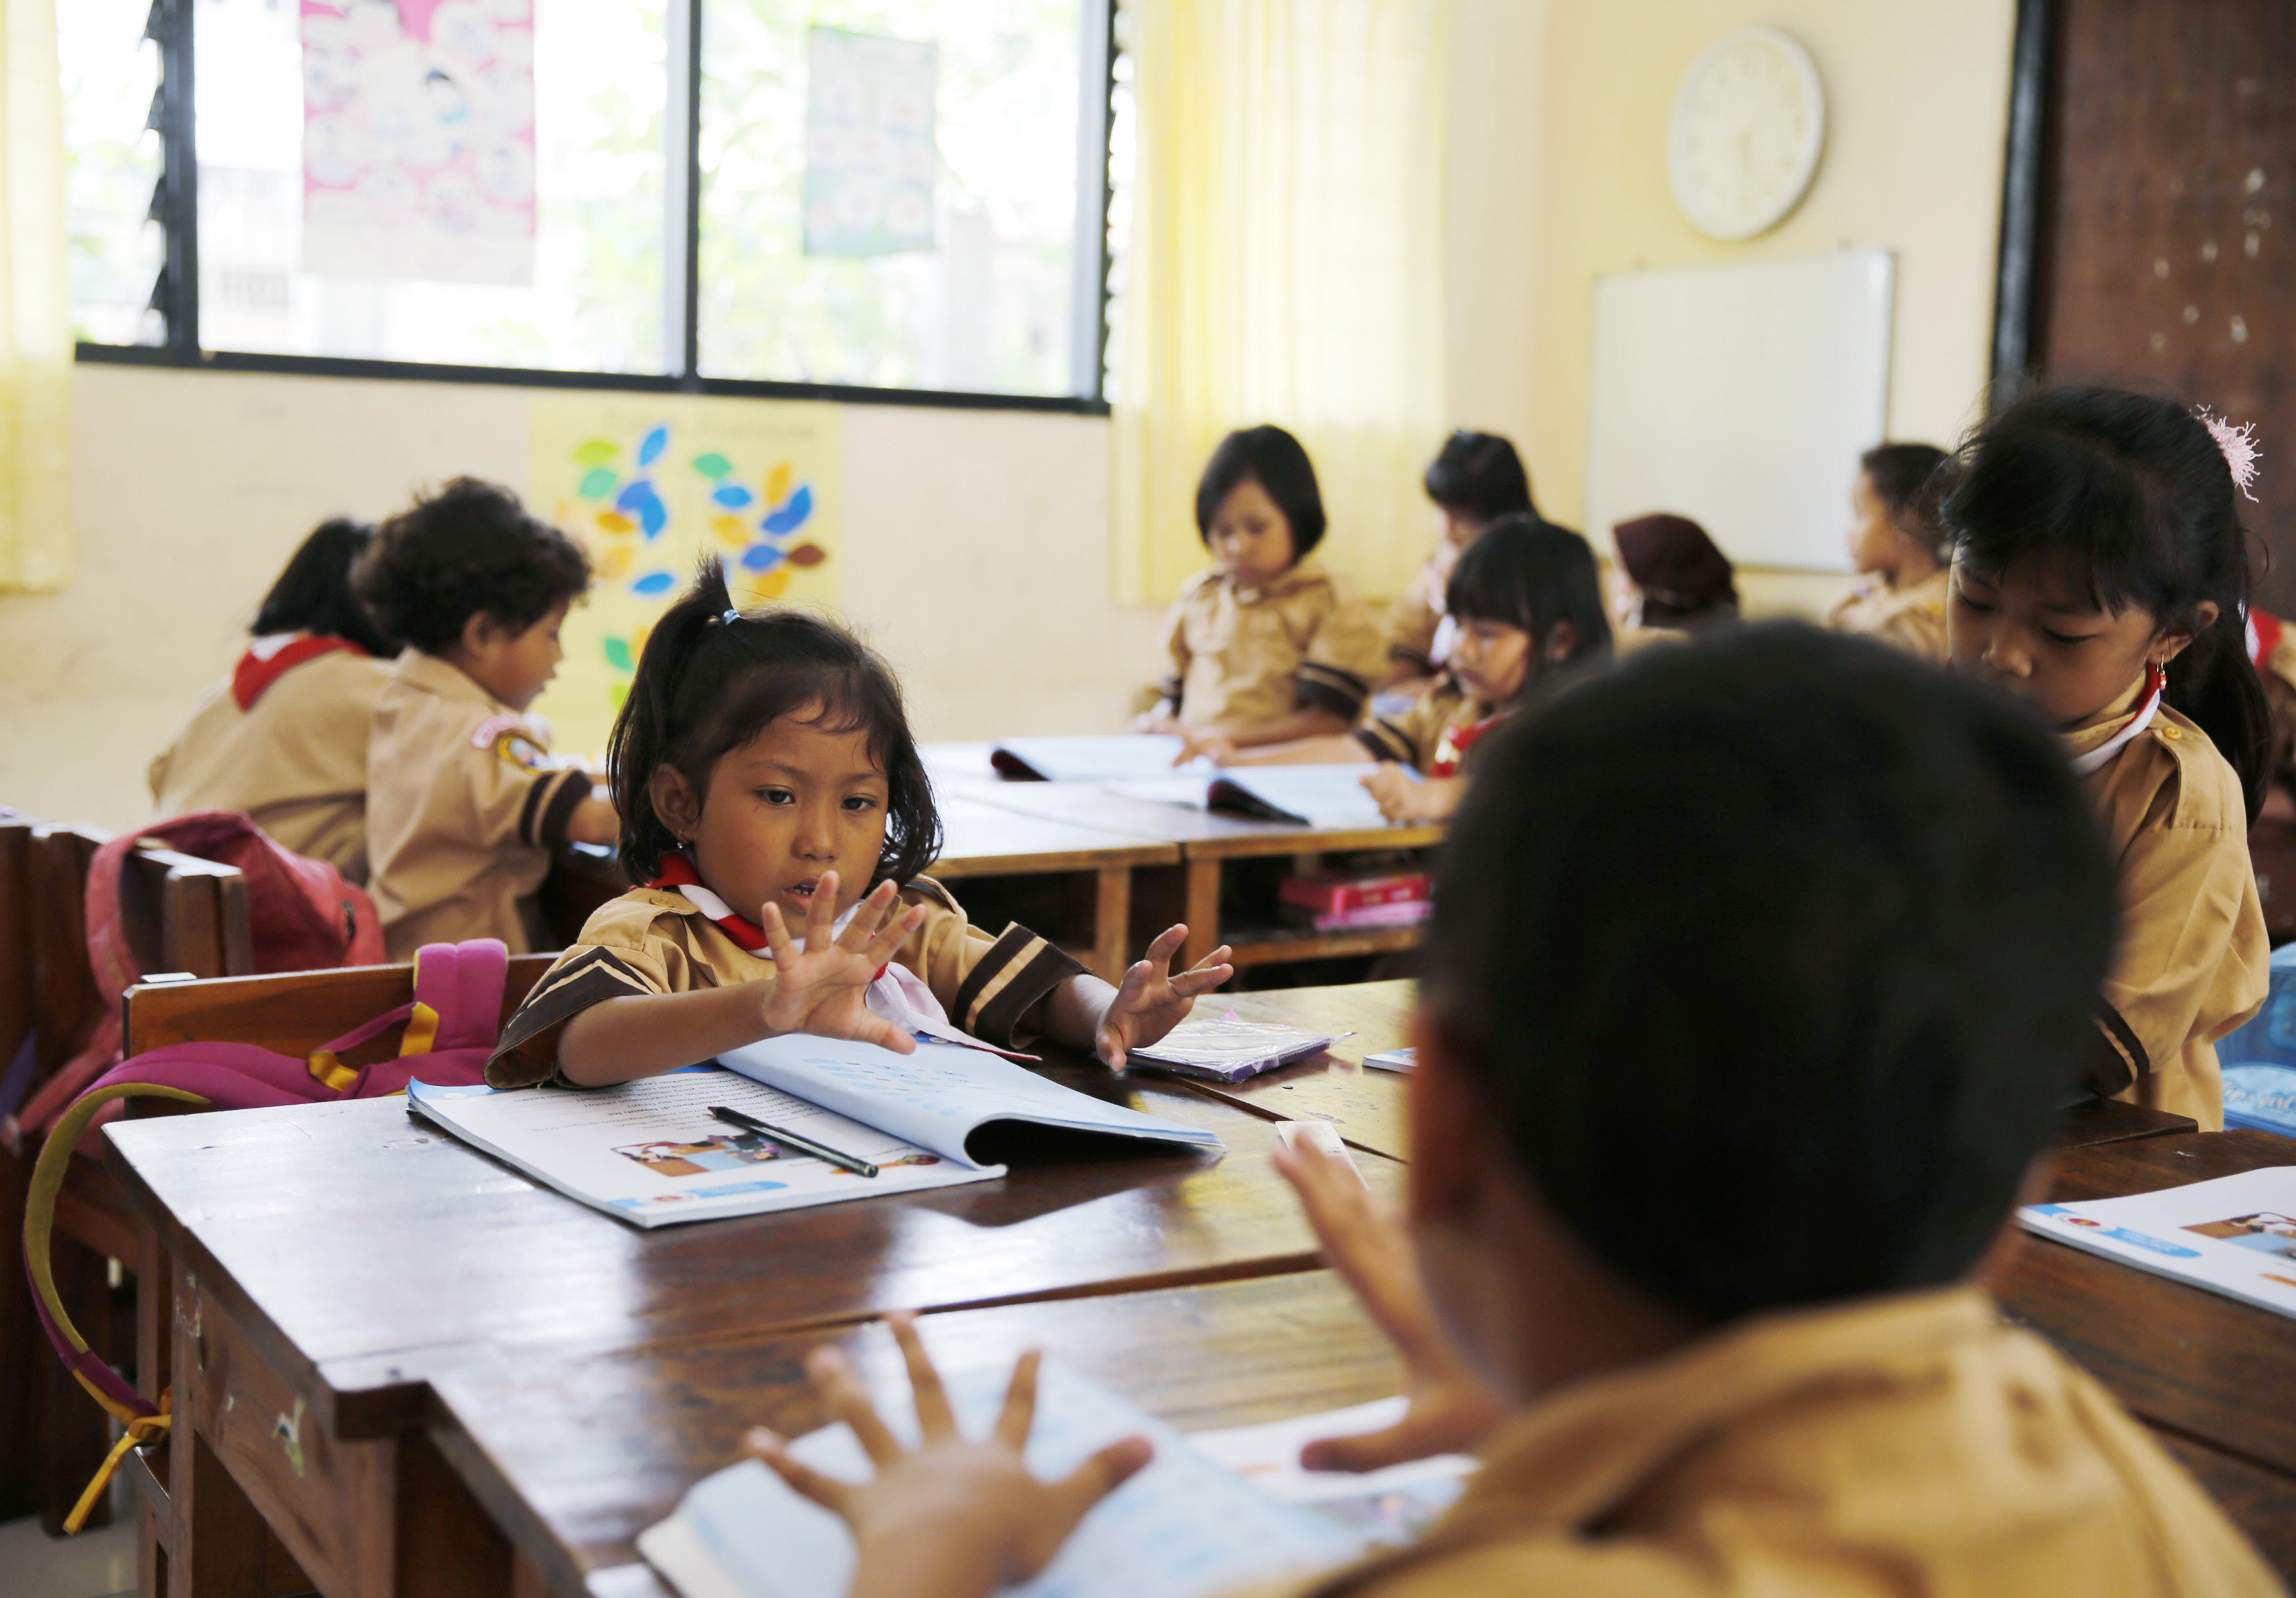 Students count with their fingers as a teacher teaches the 2013 curriculum inside a classroom at Cempaka Putih district in Jakarta